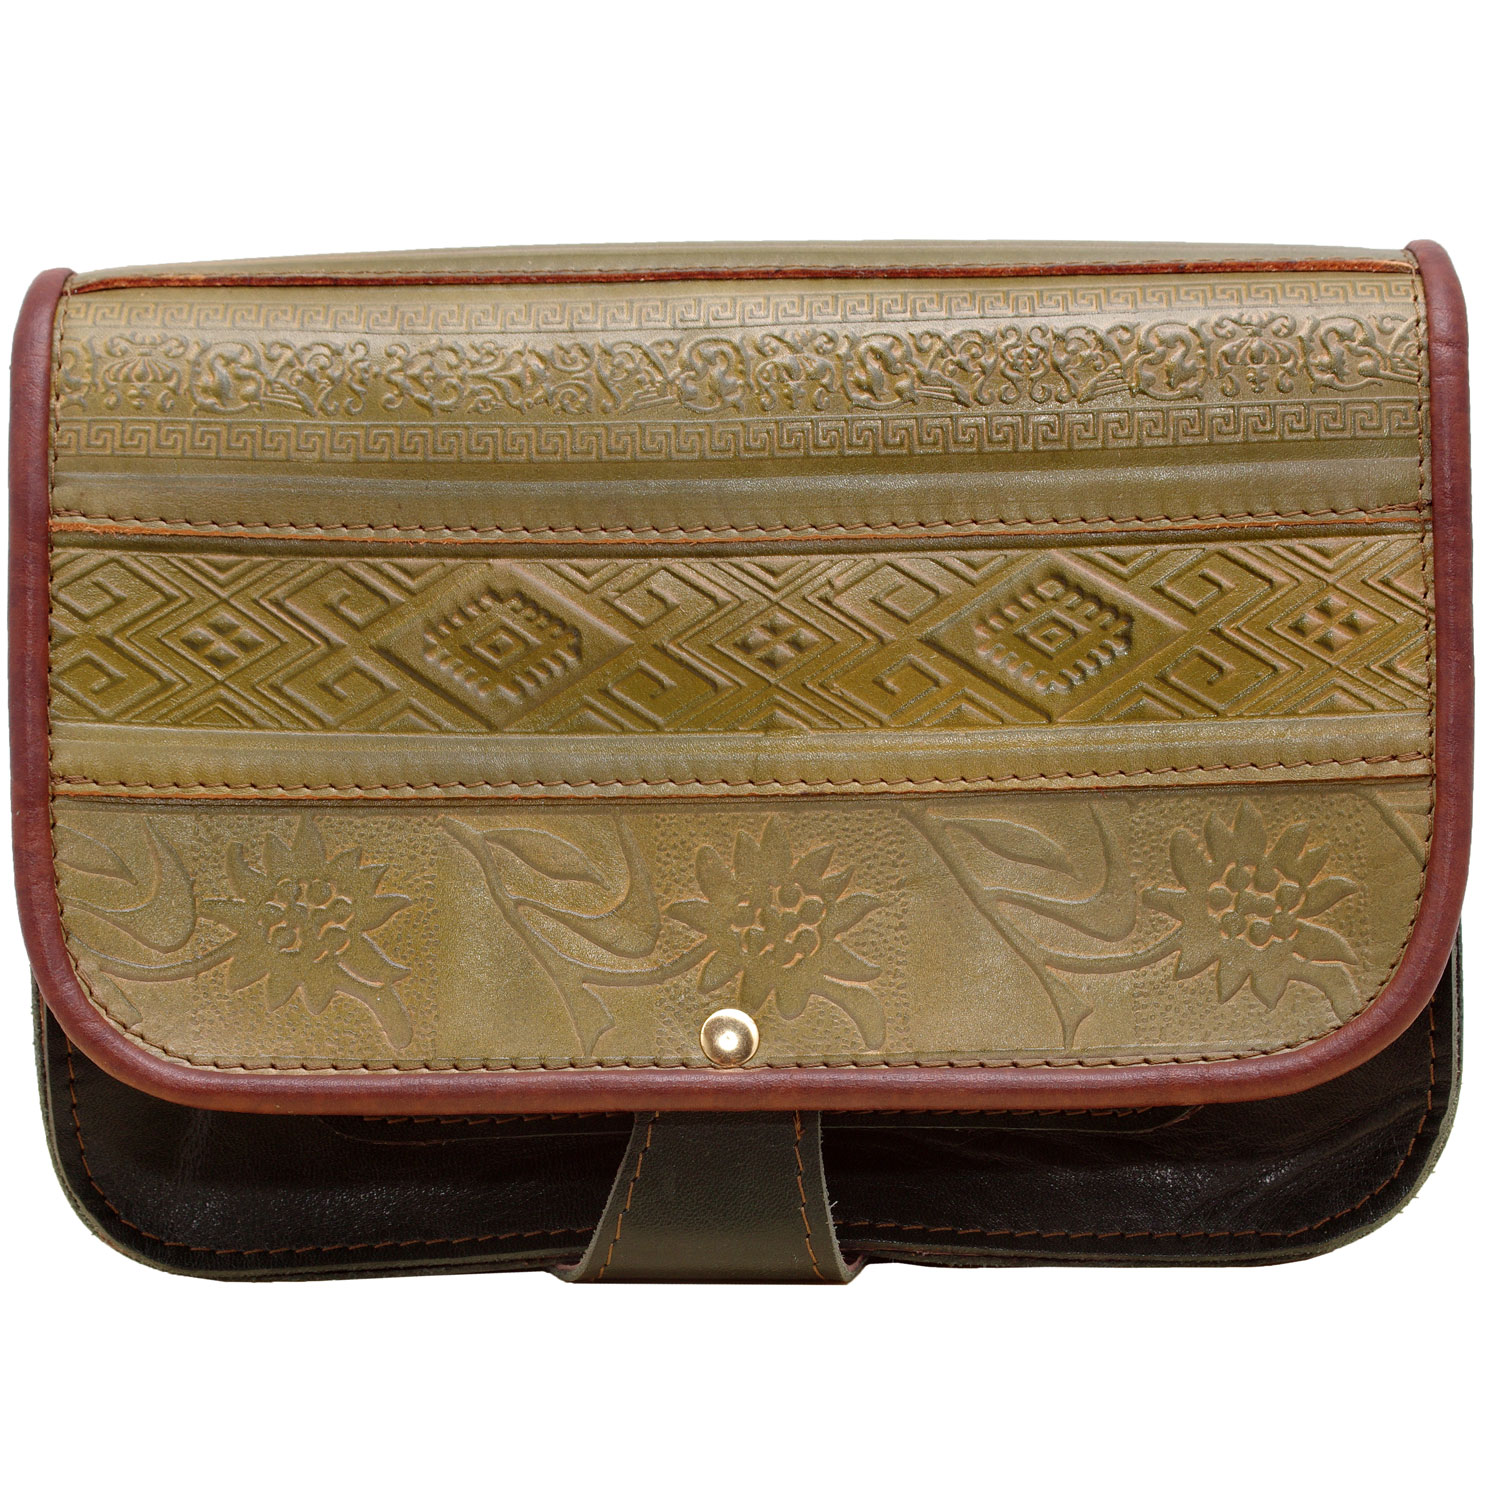 Green and Olive woman genuine leather bag with abstract popular motifs embossed design